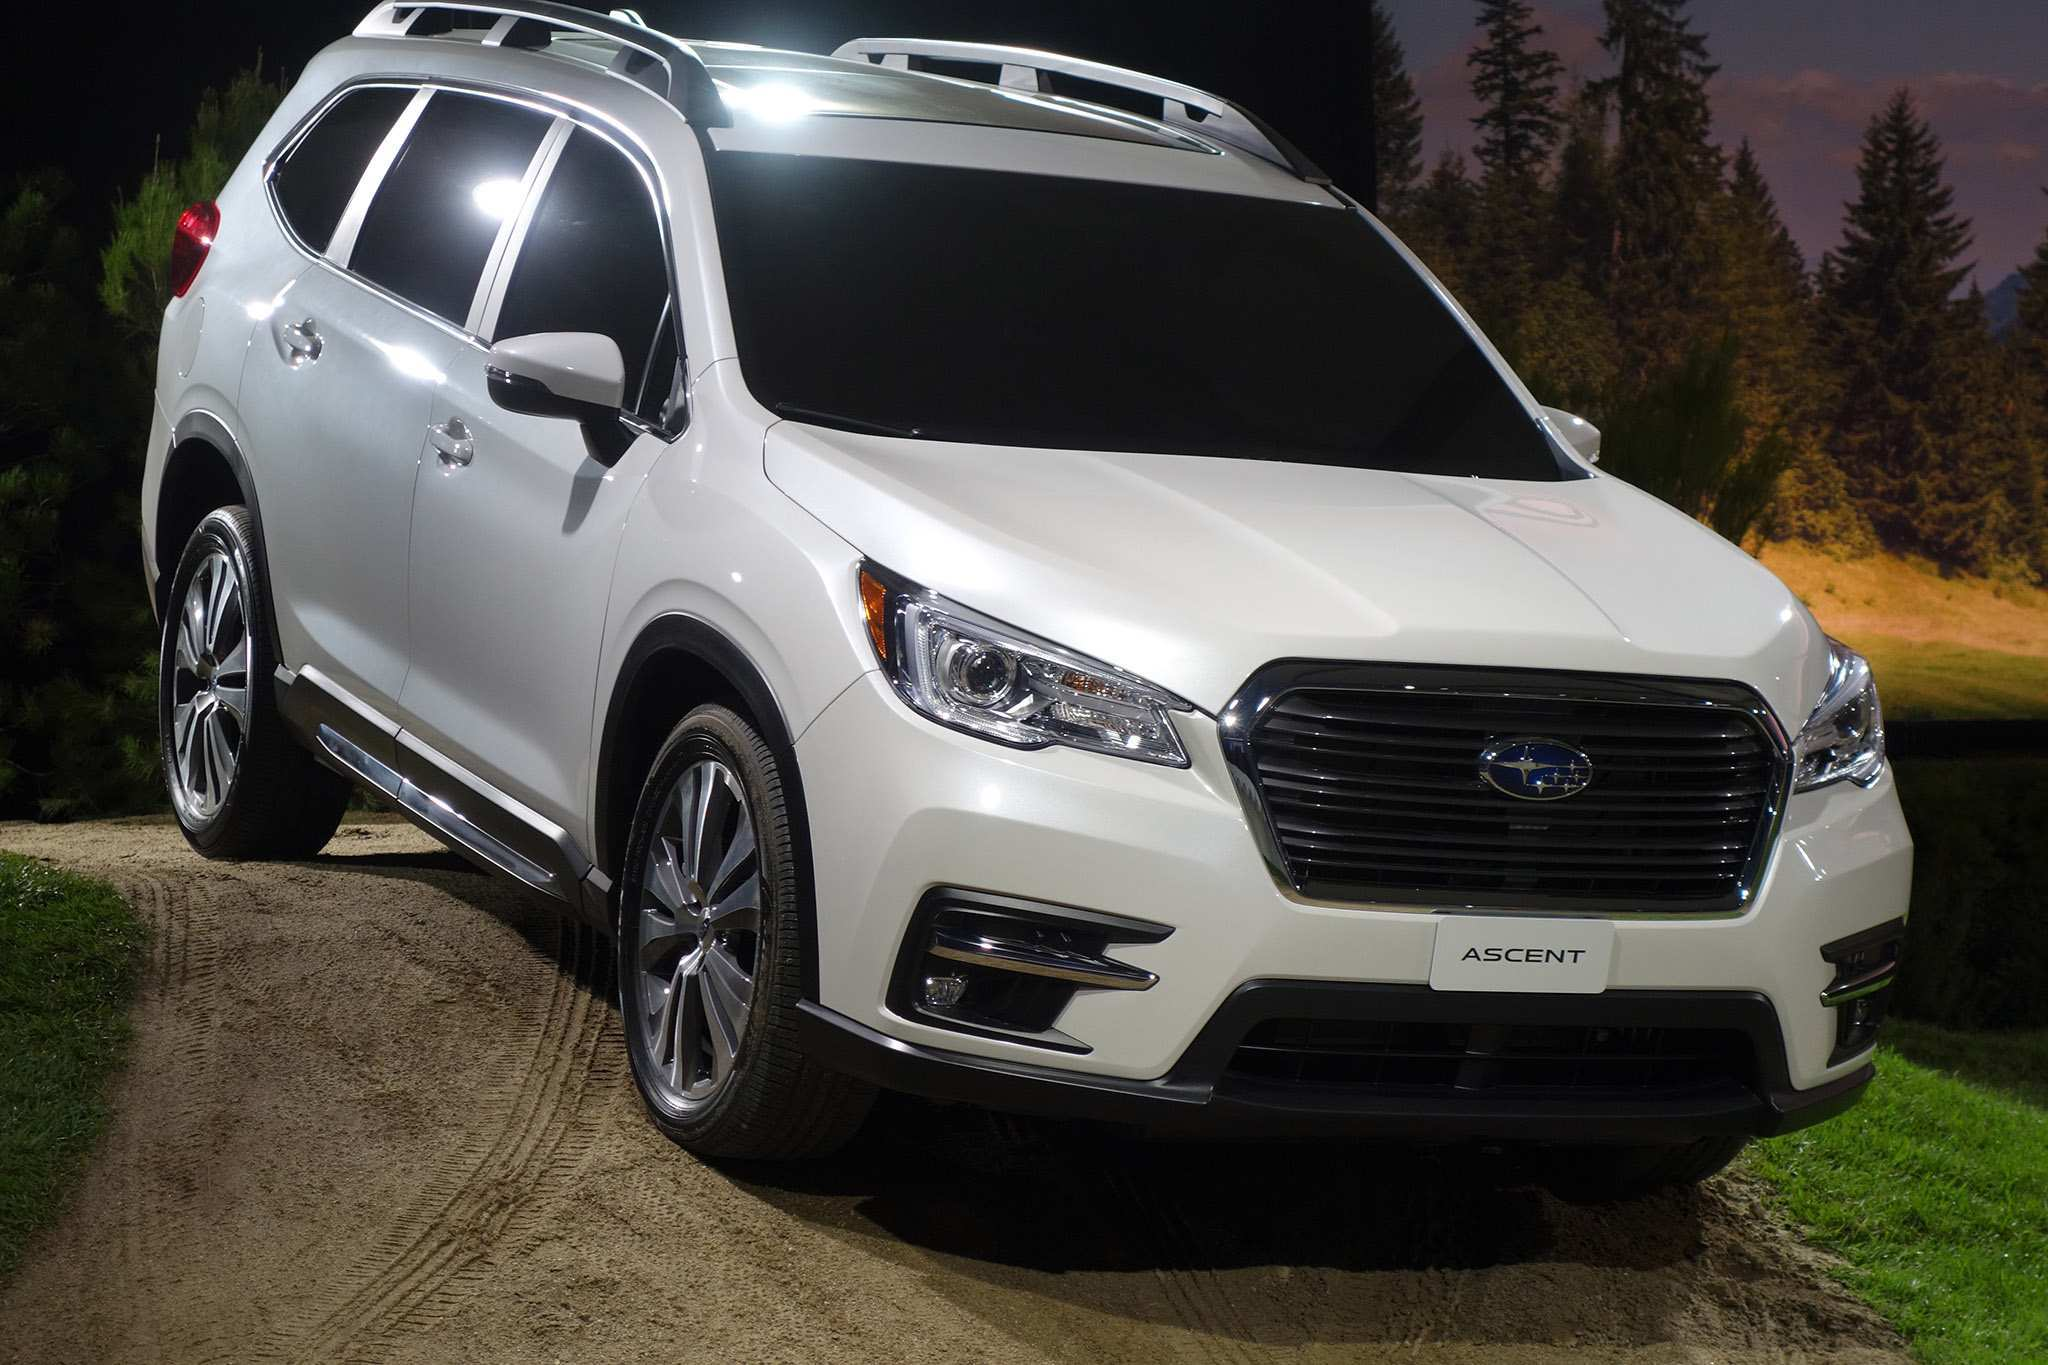 57 All New 2019 Subaru Ascent Release Date Performance